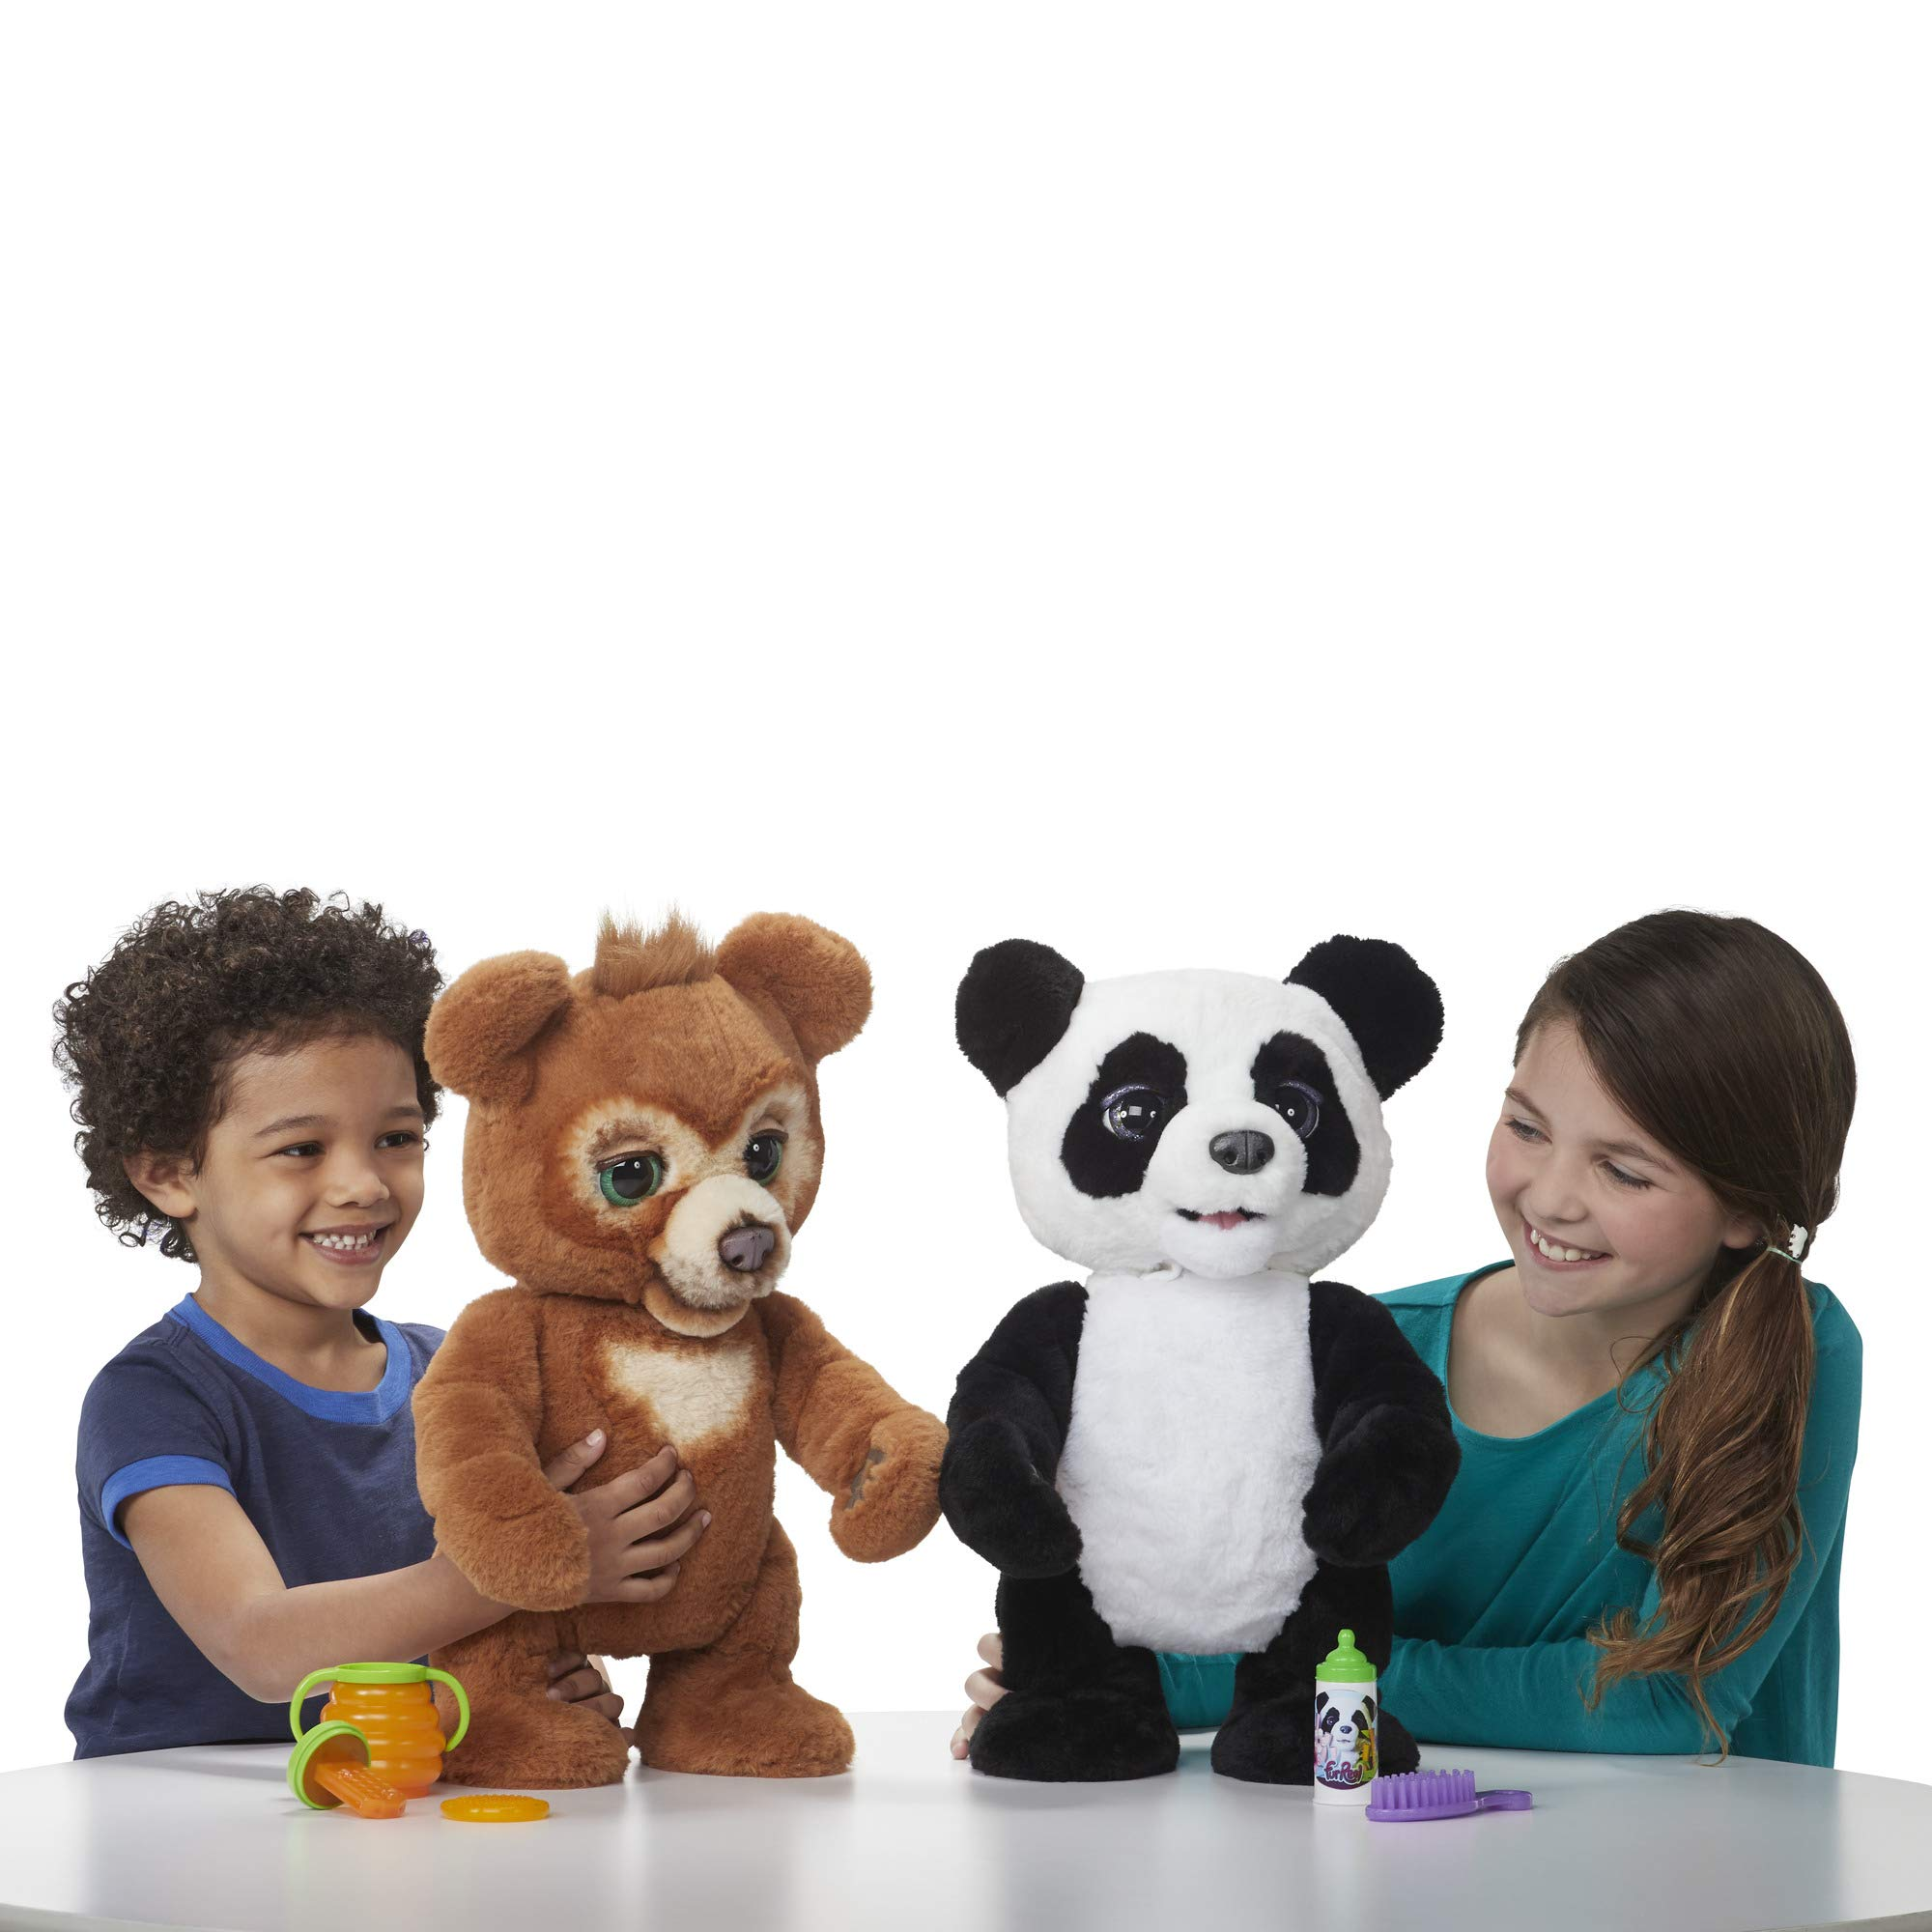 FurReal Cubby, The Curious Bear Interactive Plush Toy, Ages 4 and Up by FurReal (Image #1)